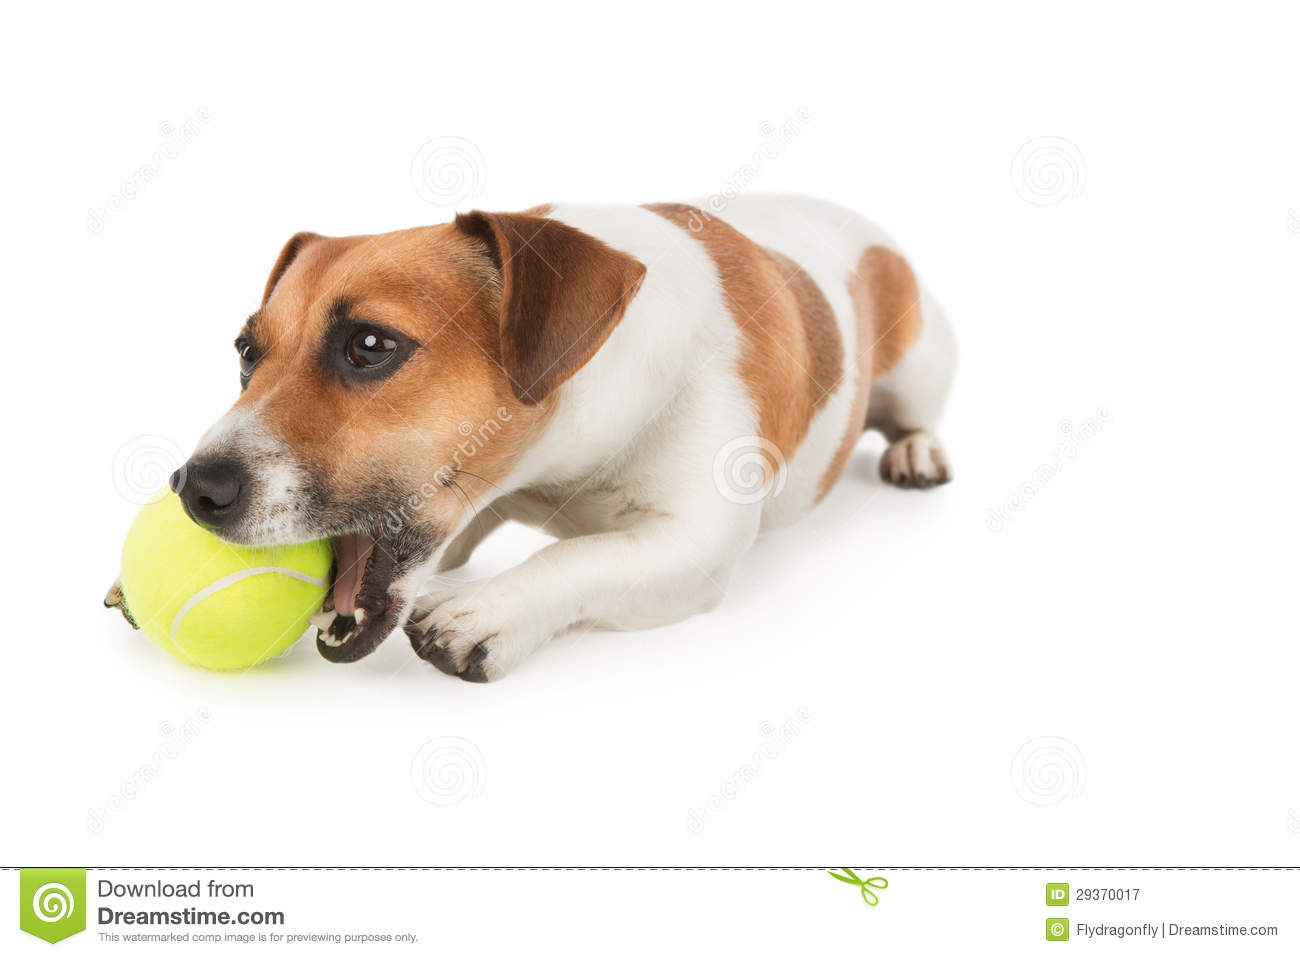 Dog ball clip art - photo#15